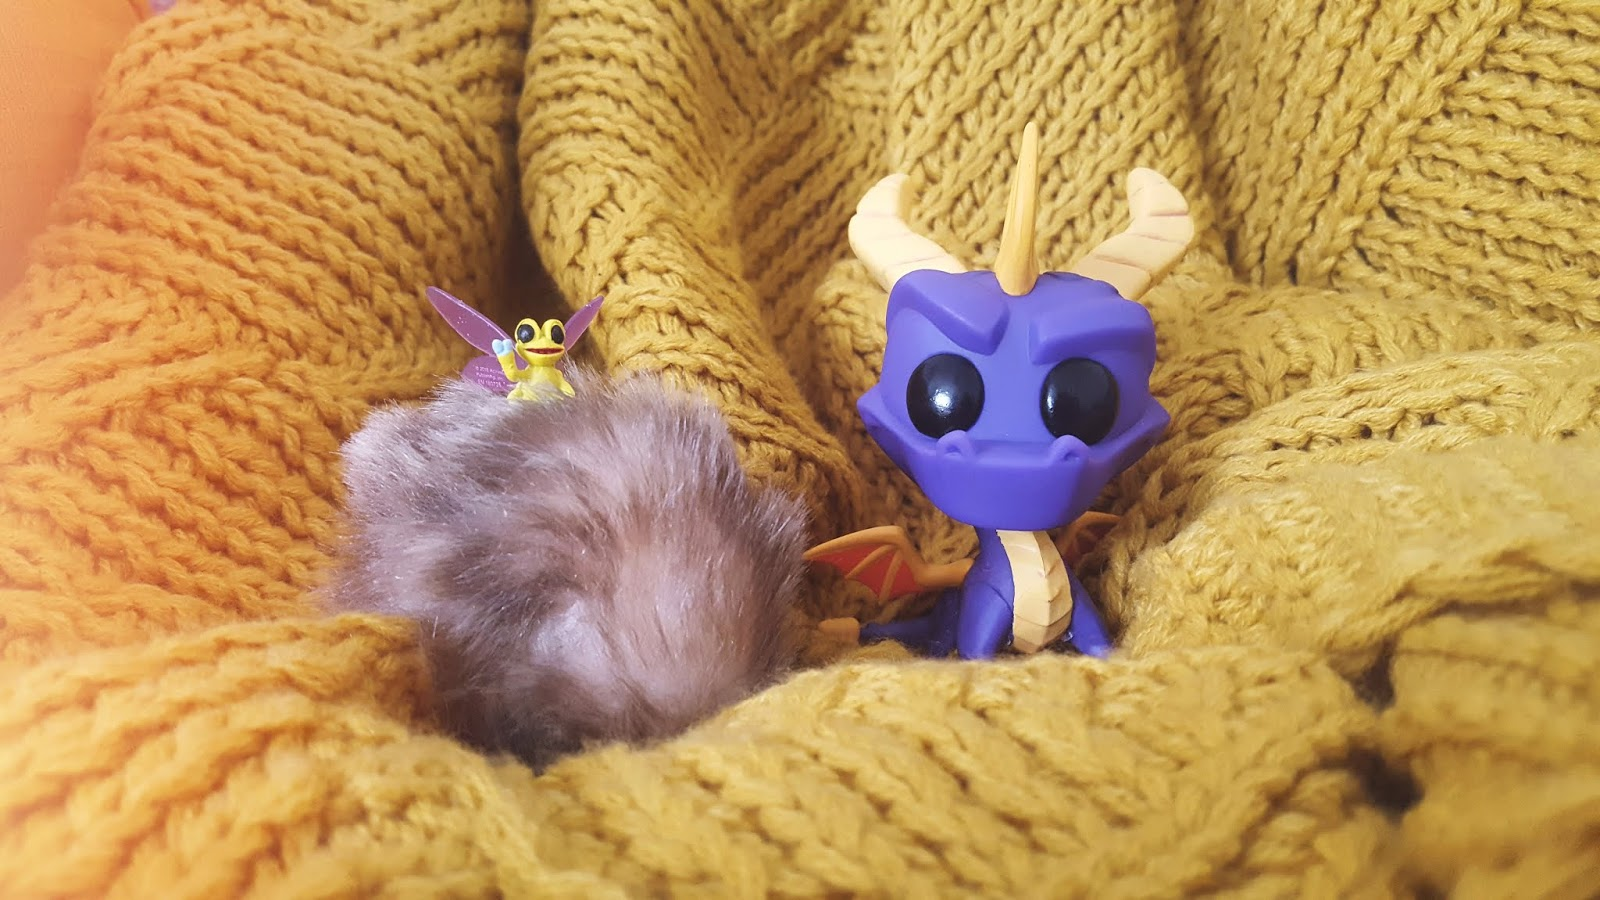 image of spyro the dragon and his dragonfly friend sparx